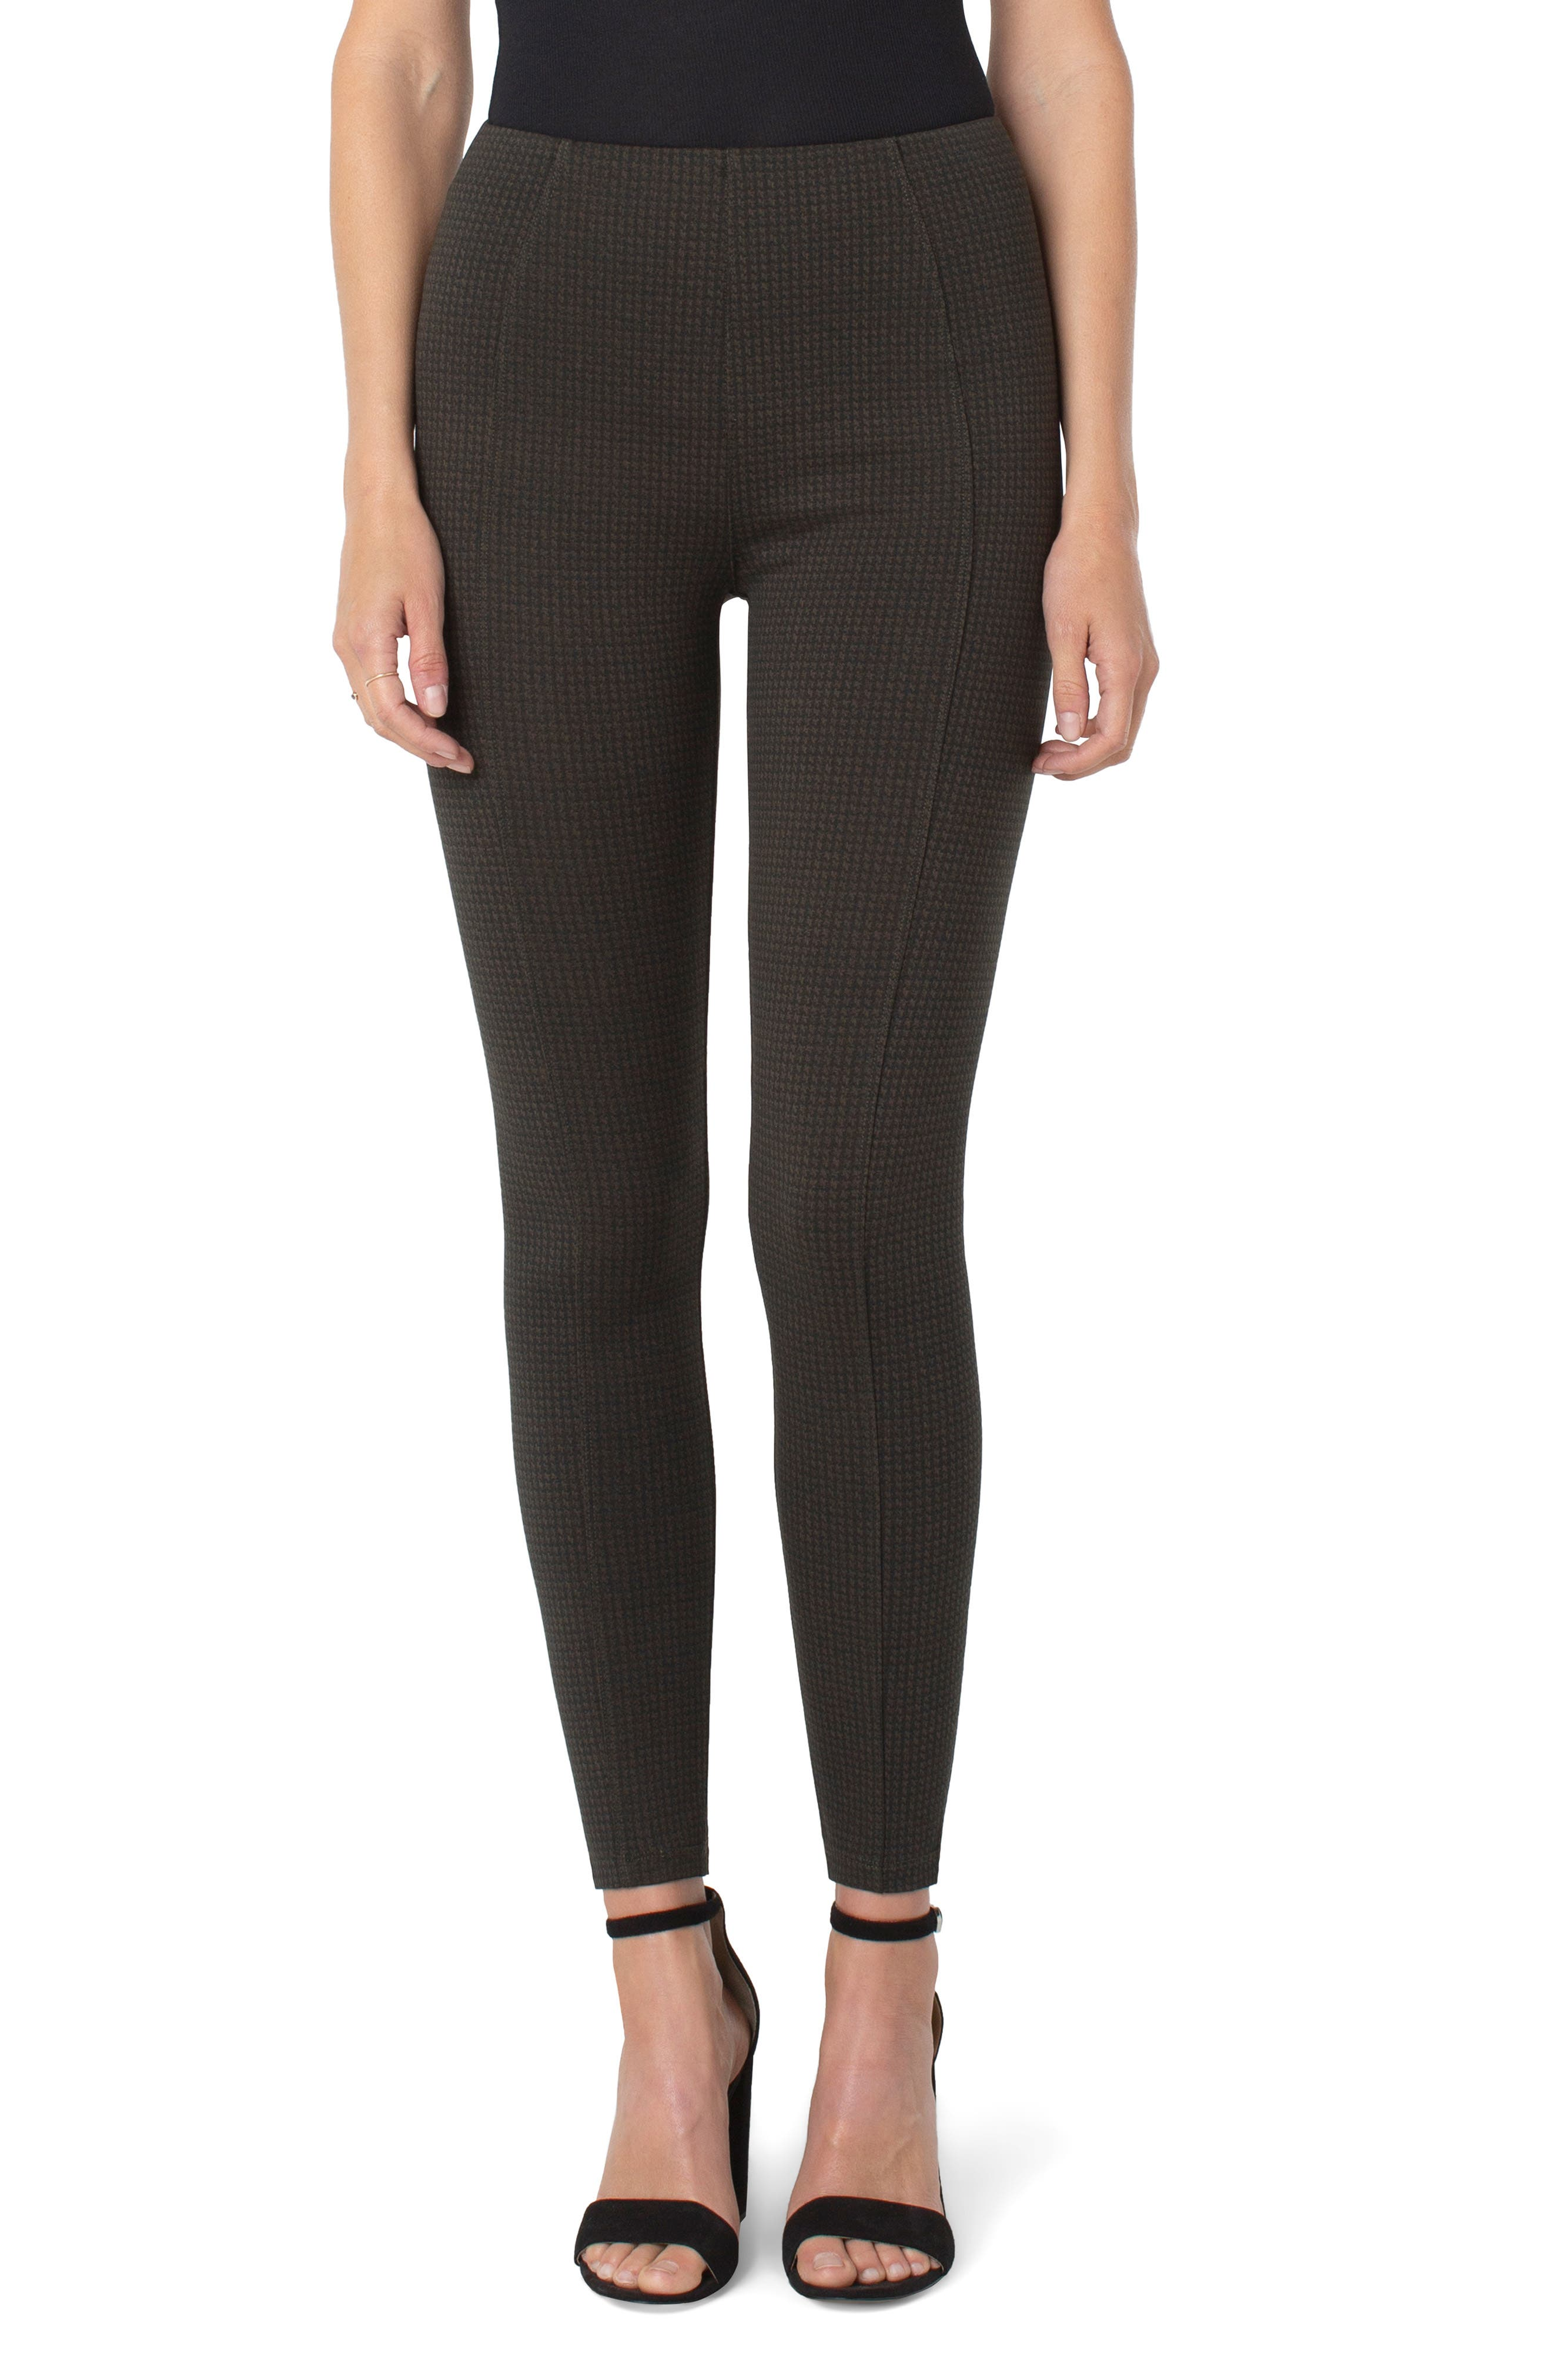 Reese Houndstooth Seamed High Waist Ankle Leggings